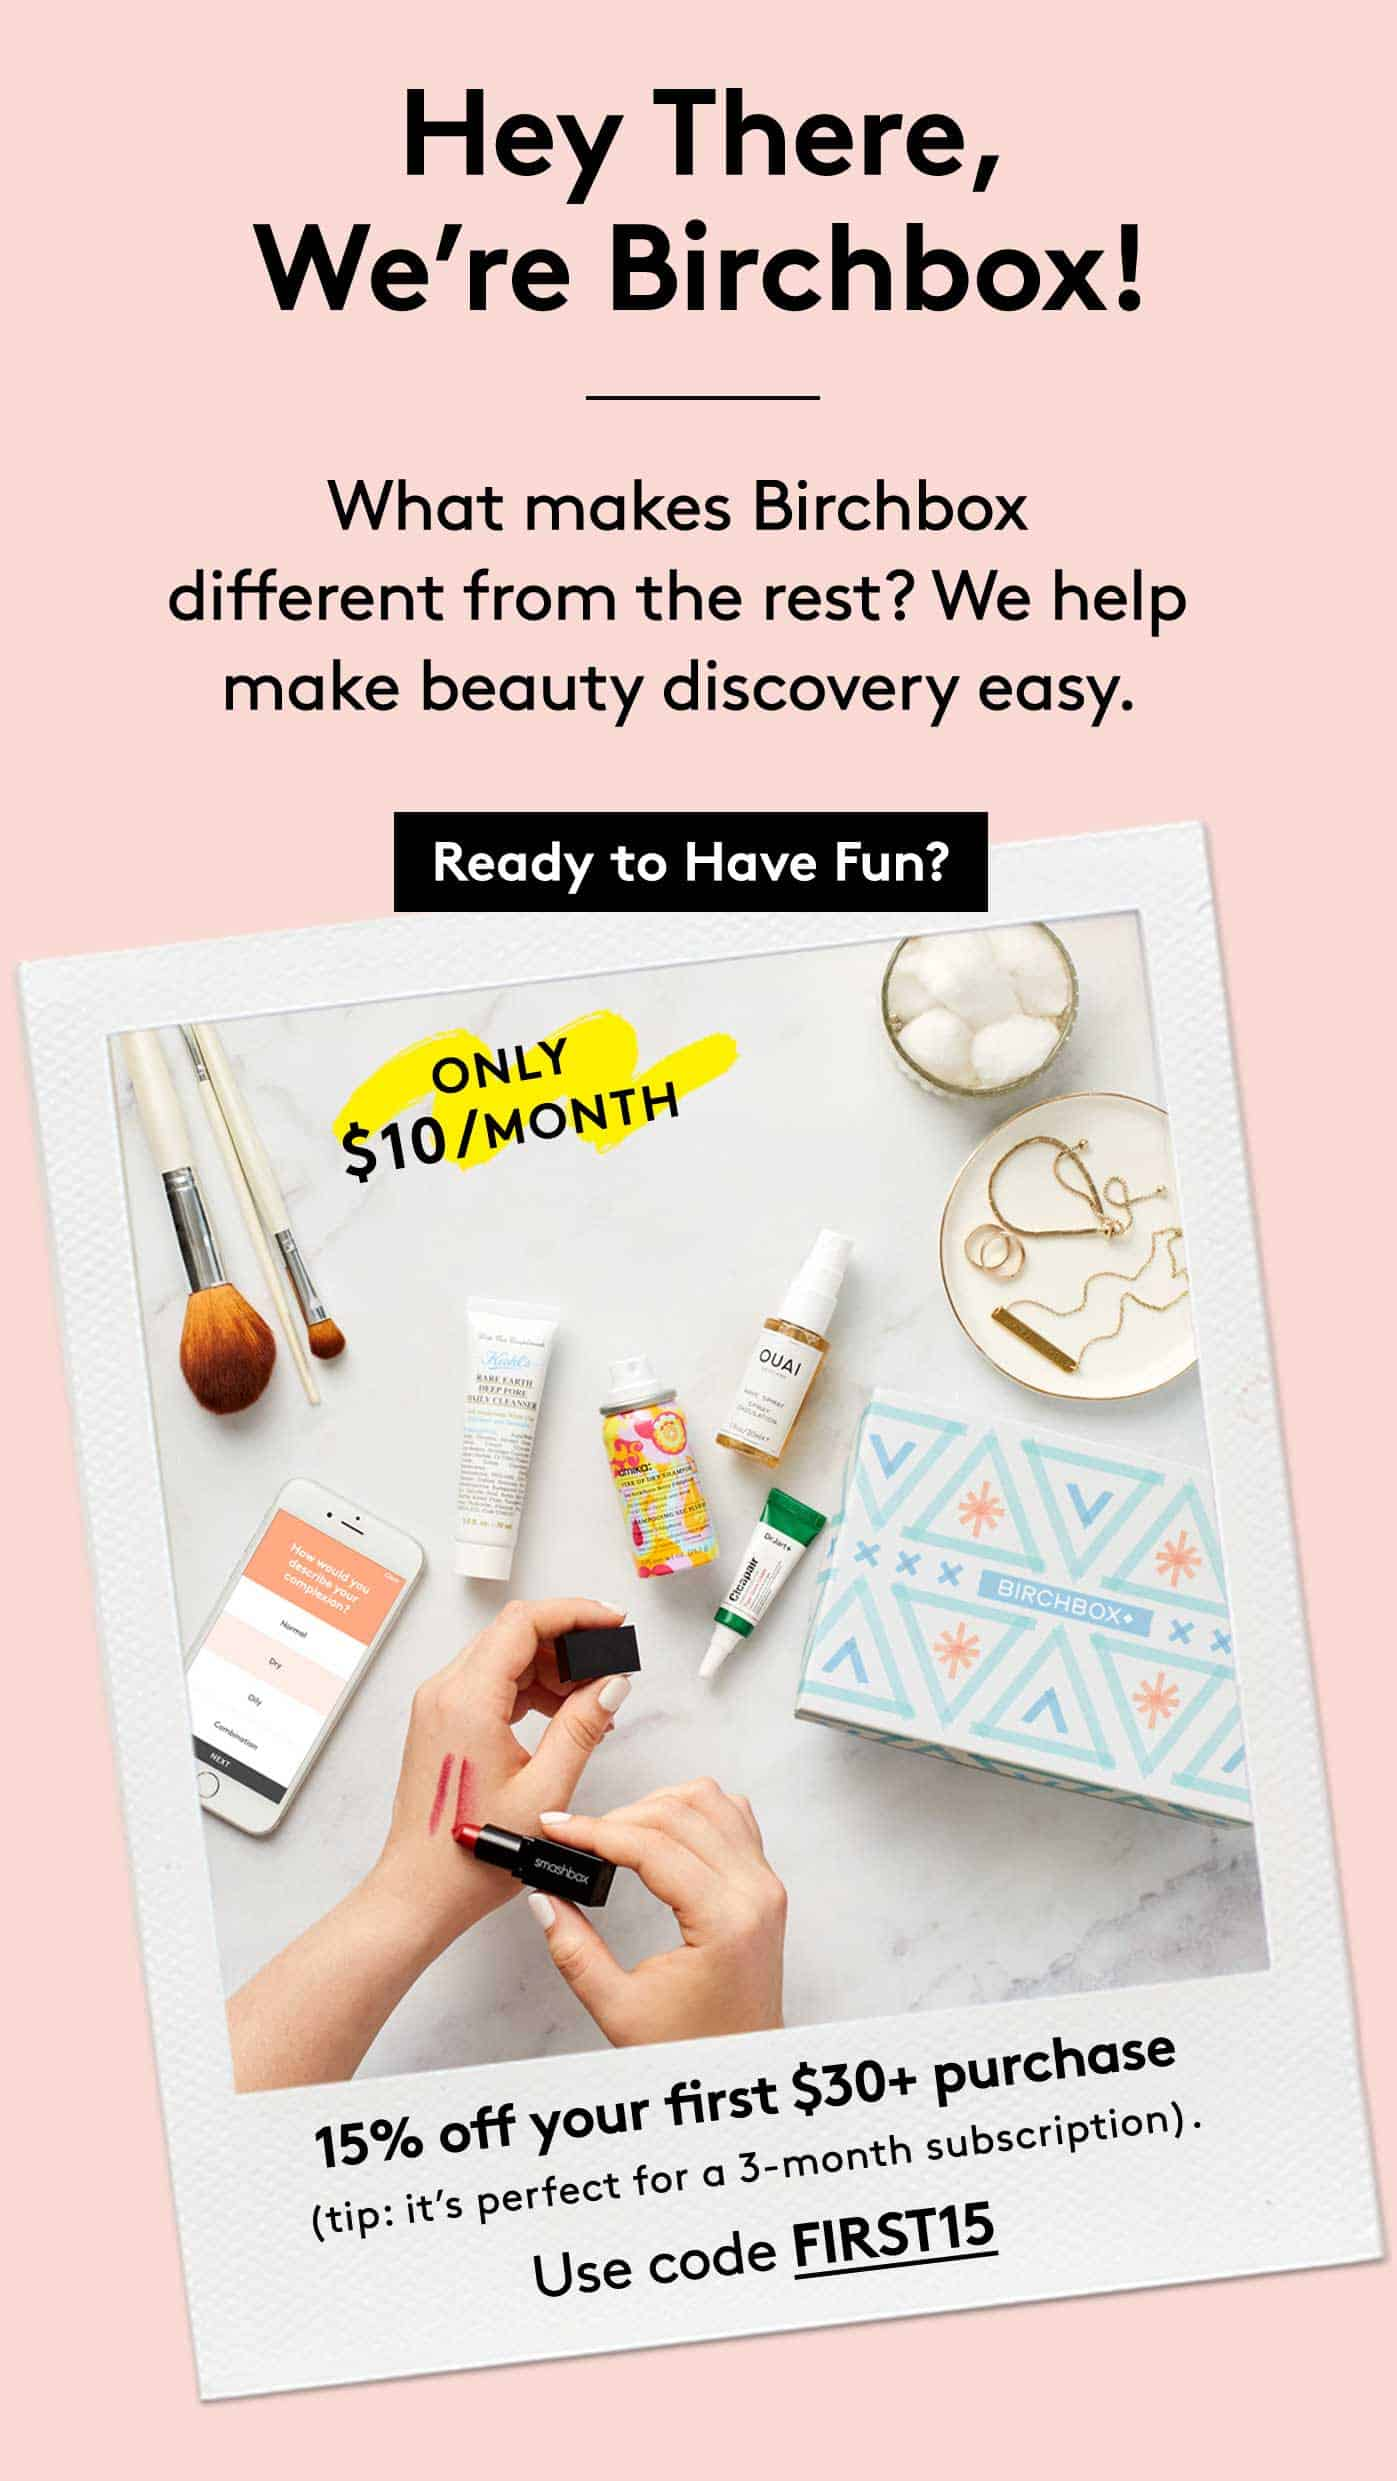 Birchbox Coupons: Get 15% Off First $30+ Purchase Including Subscriptions!